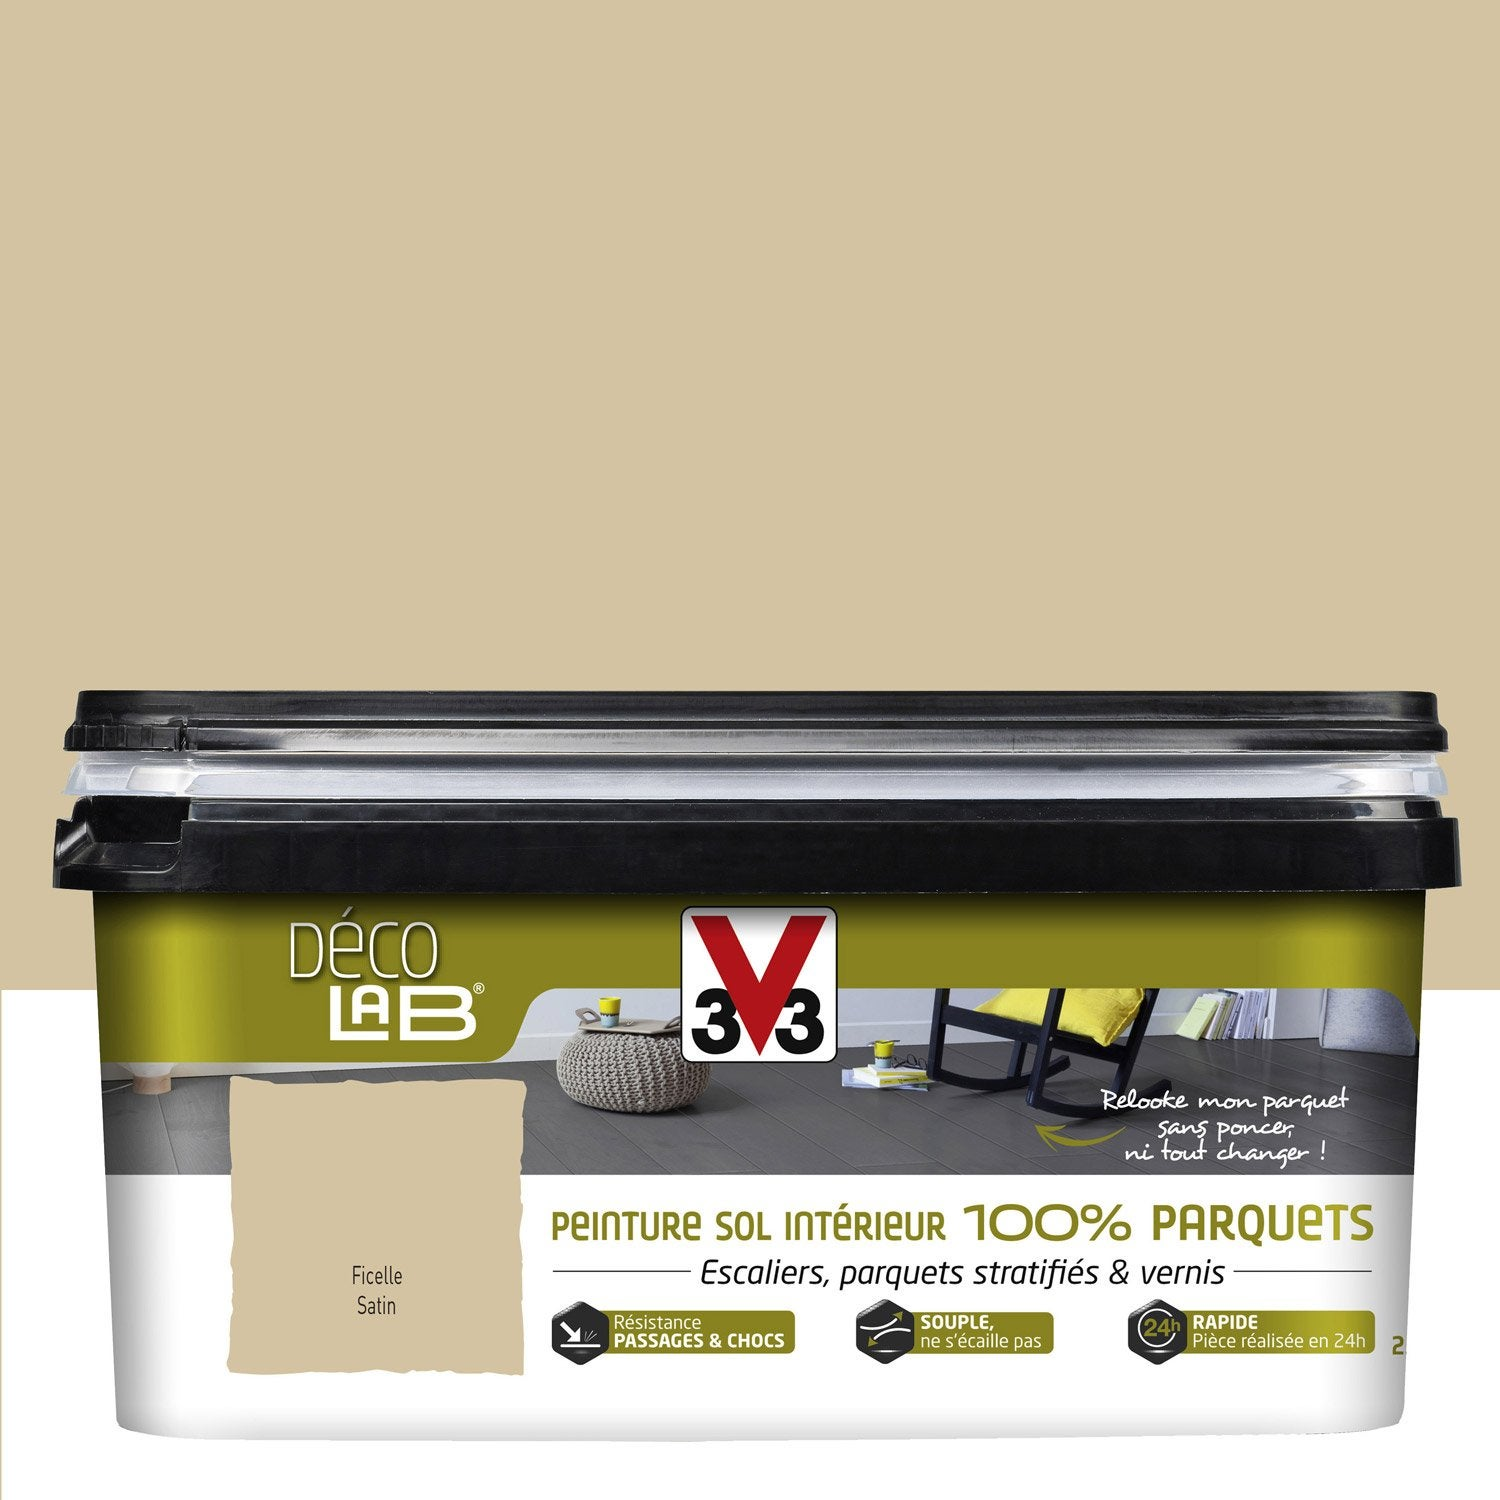 Peinture sol int rieur decolab sol 100 parquet v33 beige for Peinture renovation carrelage v33